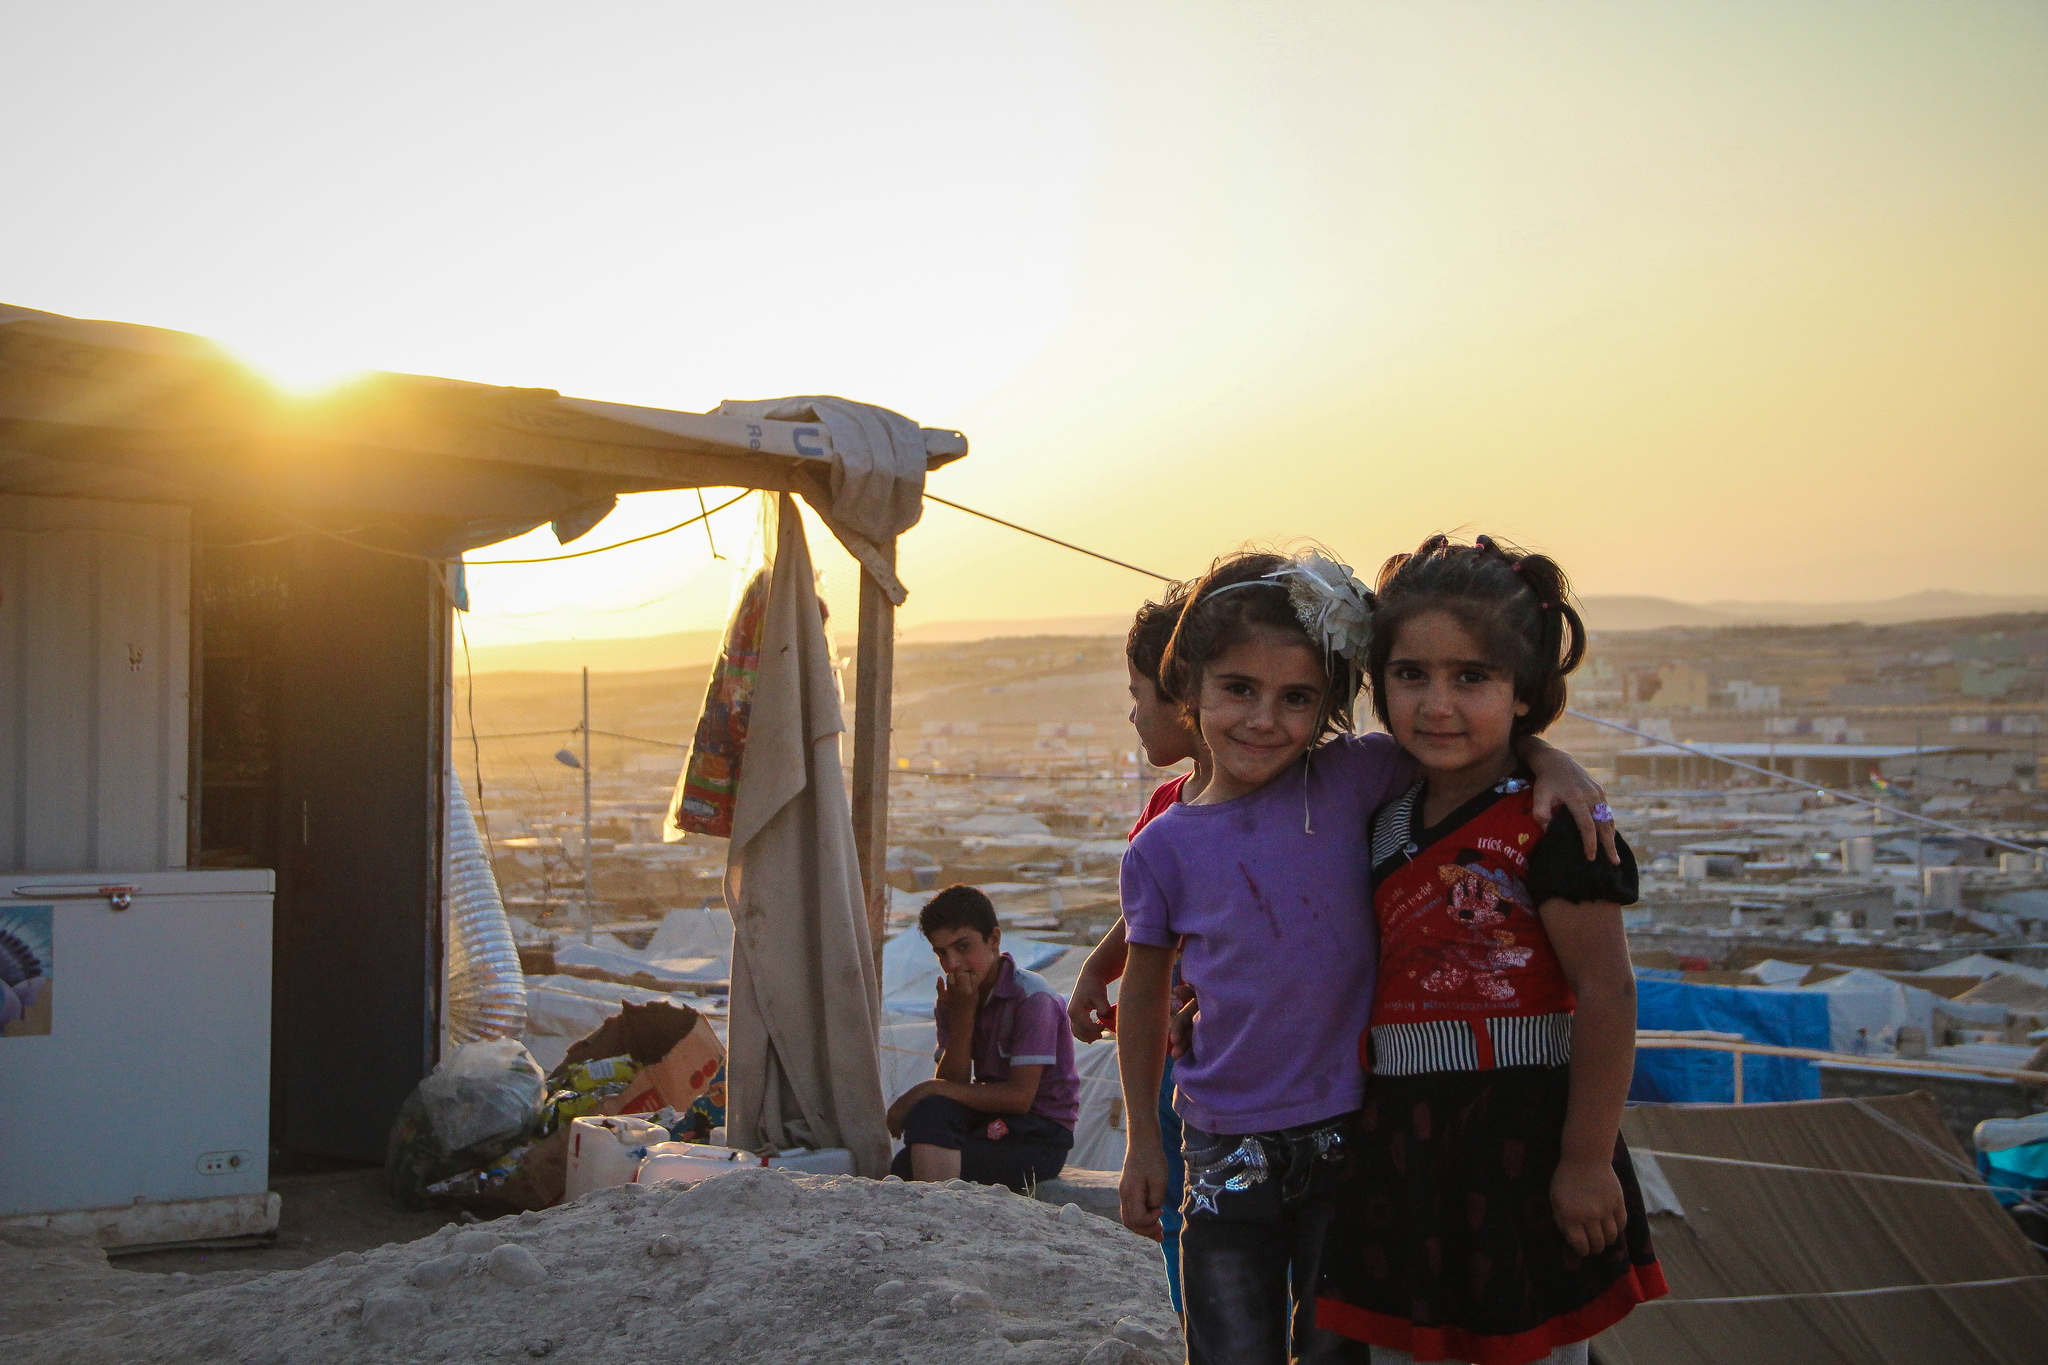 Syrian refugee children displaced from their home. They are part of nearly 12 million refugees who have fled the region since 2011.